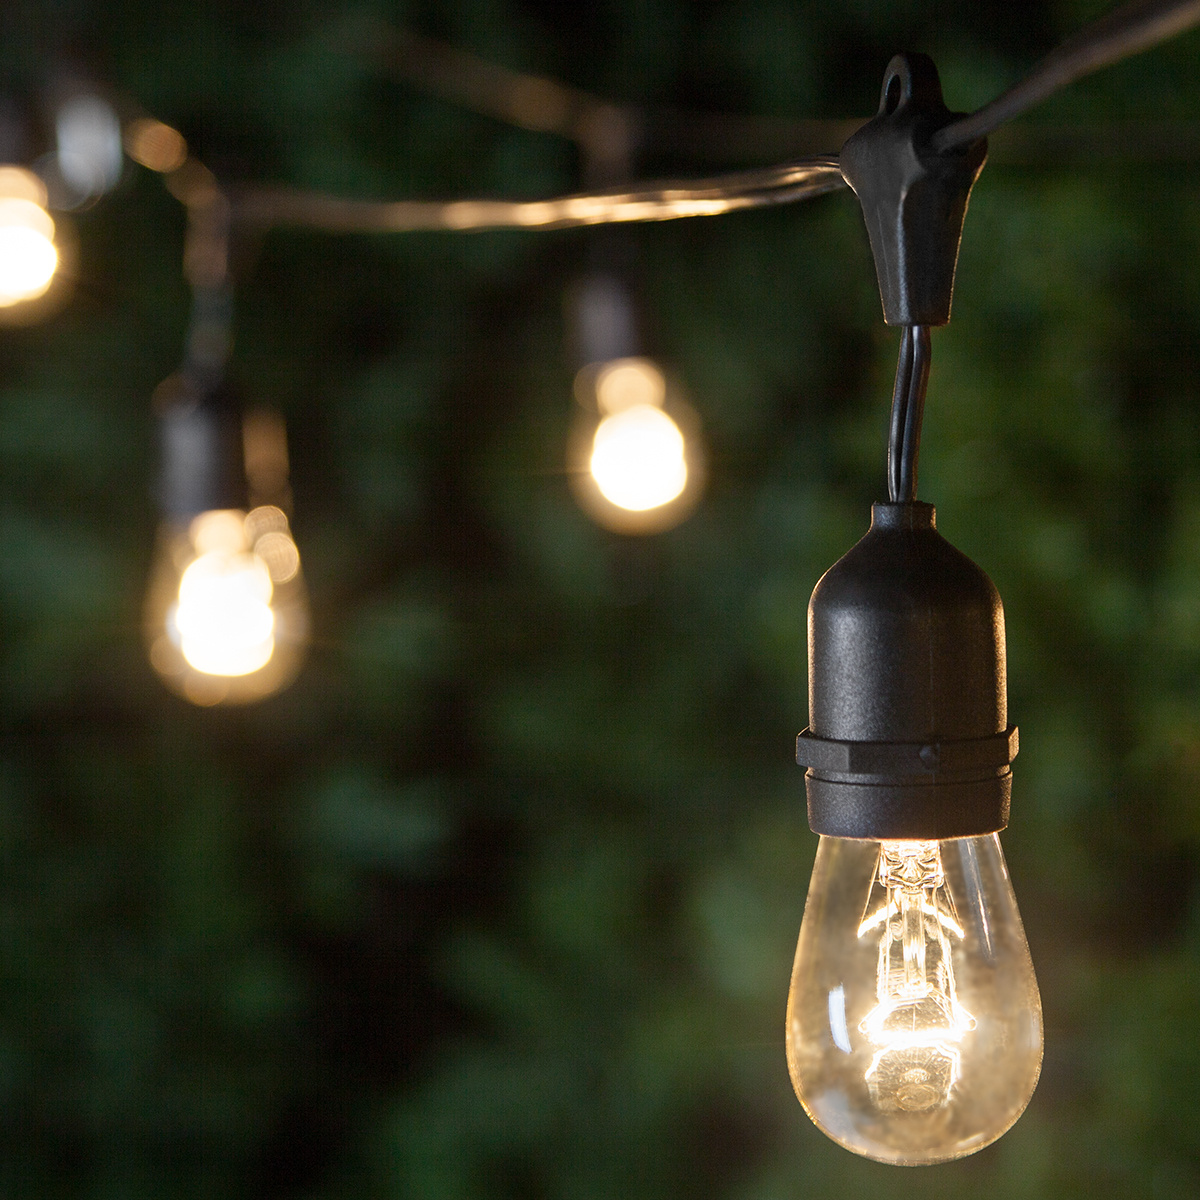 patio lights - commercial clear patio string lights, 24 s14 e26 bulbs black  wire MWTRYZY